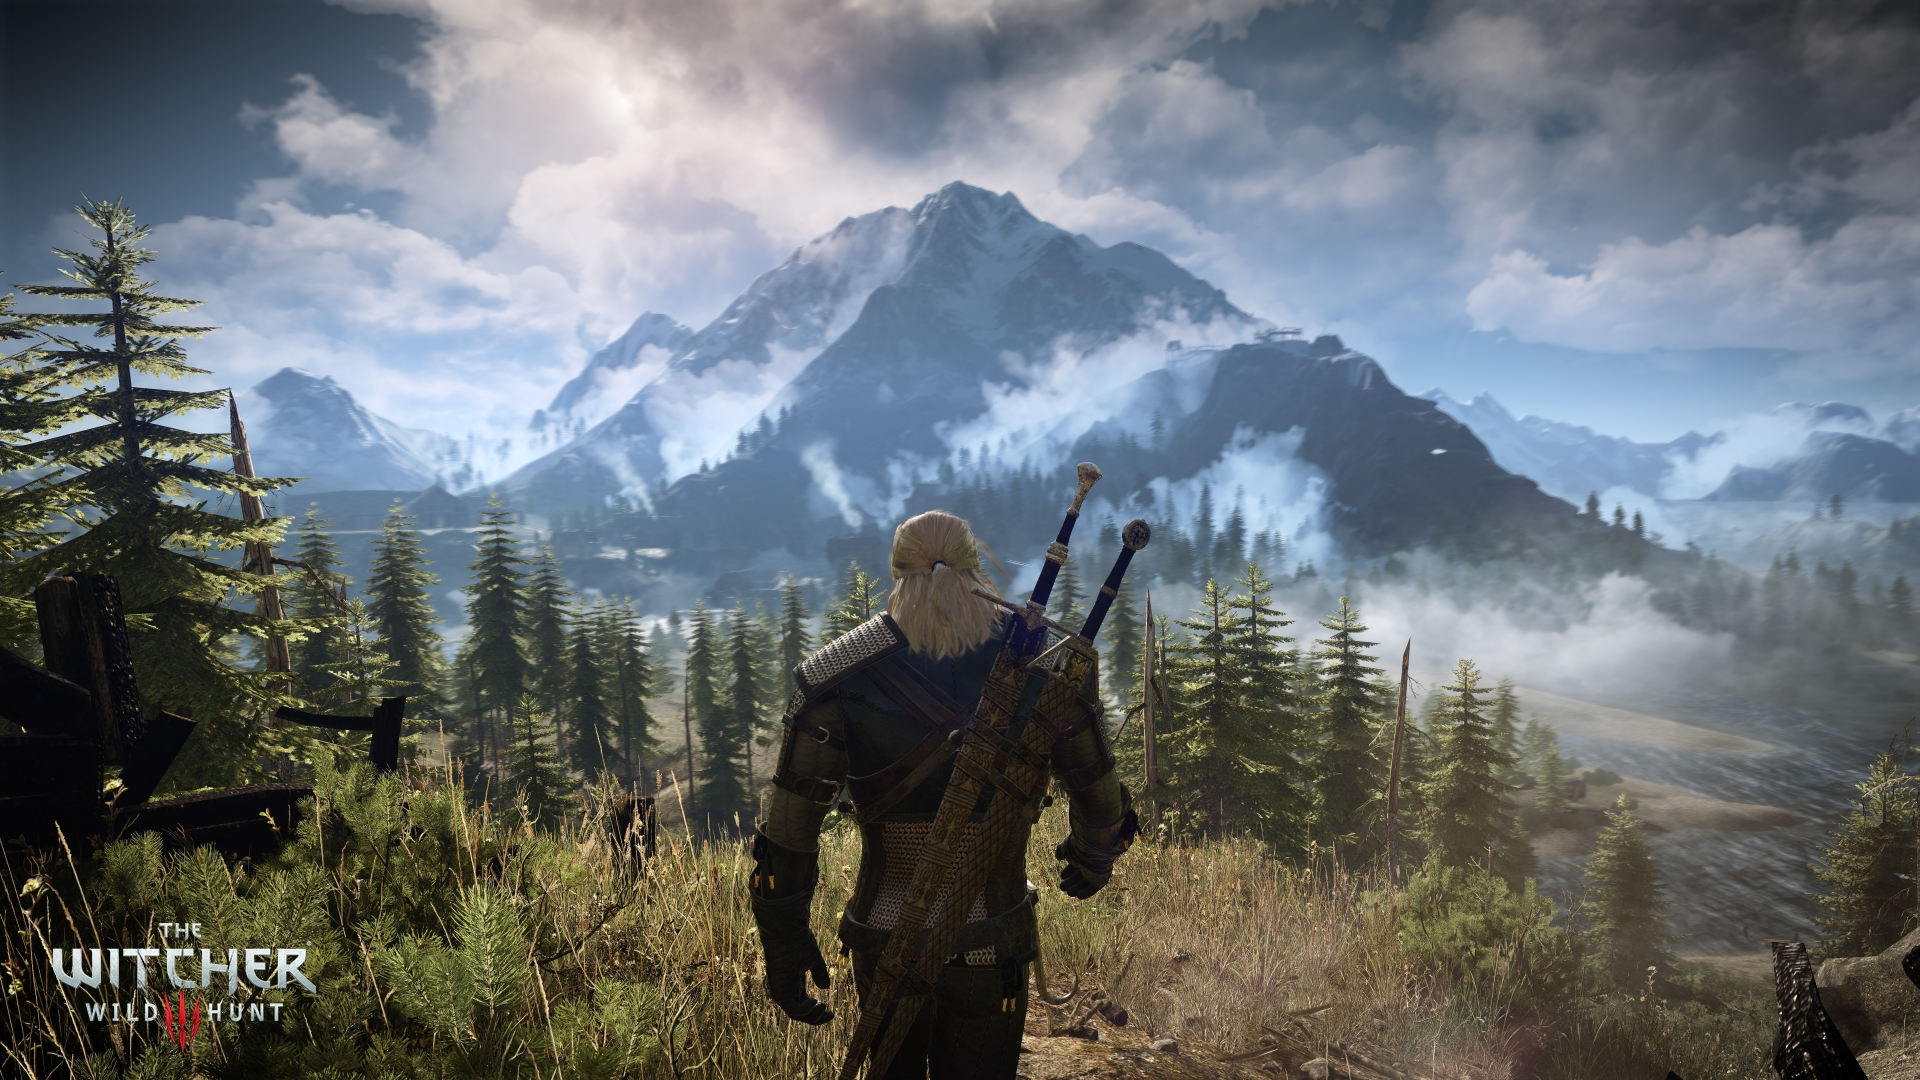 The Witcher 3: Wild Hunt - Release Date and E3 Trailer ...